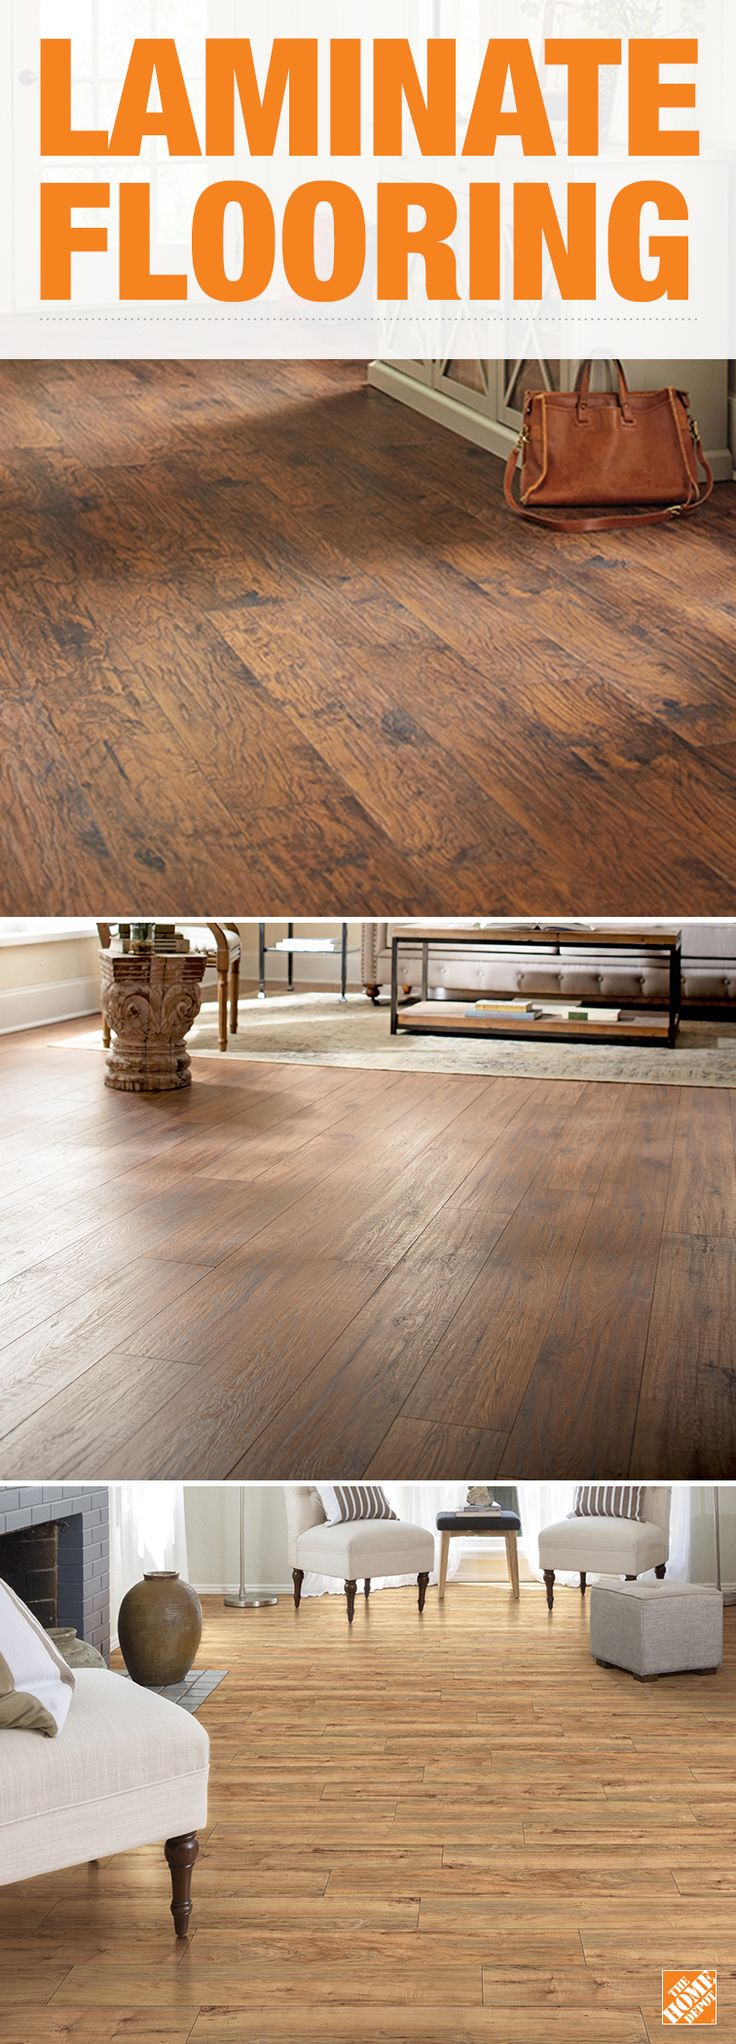 How durable is laminate flooring - The New Generation Of Laminate Flooring Is More Durable And Beautiful Than Ever From Inviting